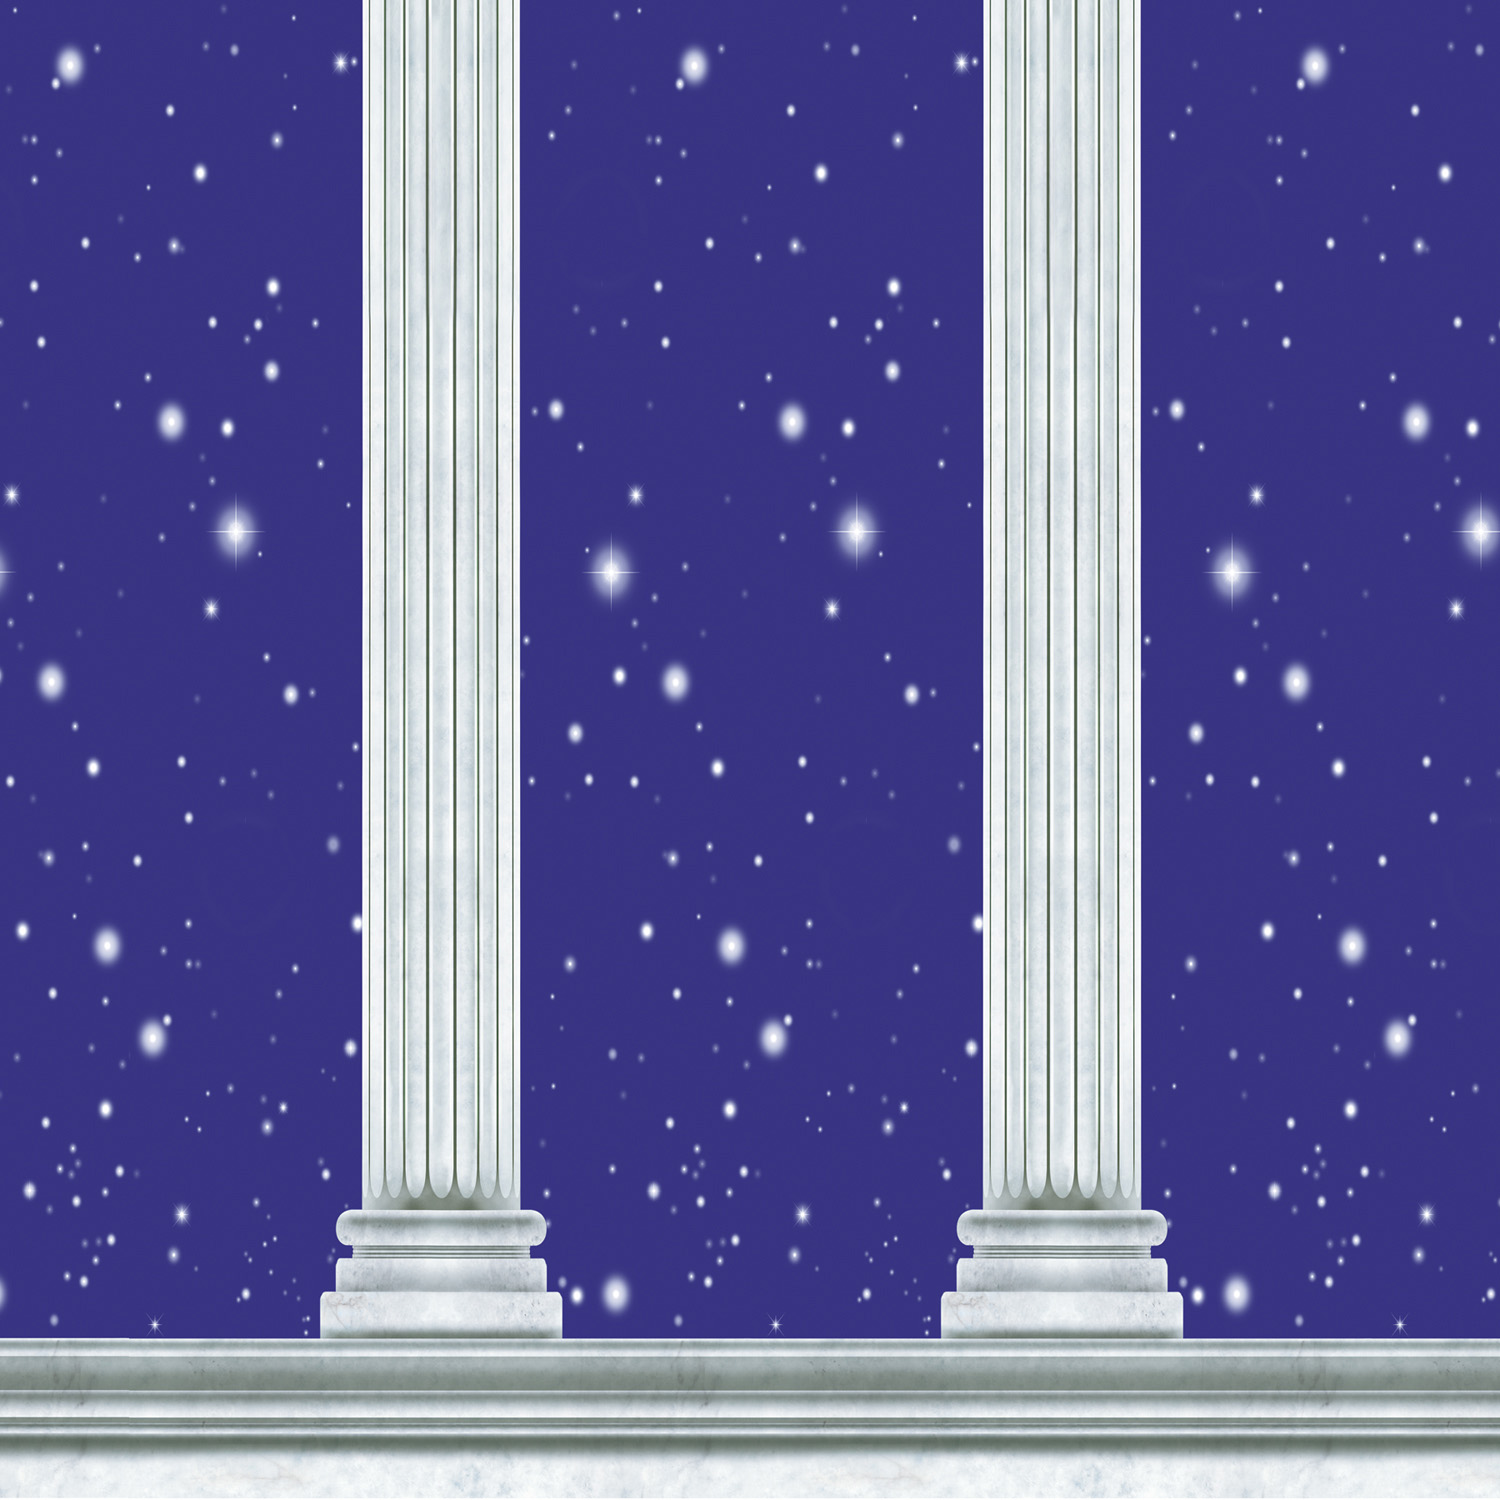 Column Backdrop (Pack of 6) Column backdrop, backgrounds, star, columns, wall hanging, ceiling decor, New Years Eve, Awards Night, Wholesale party supplies, Inexpensive party favors, Party goods, Cheap, Budget